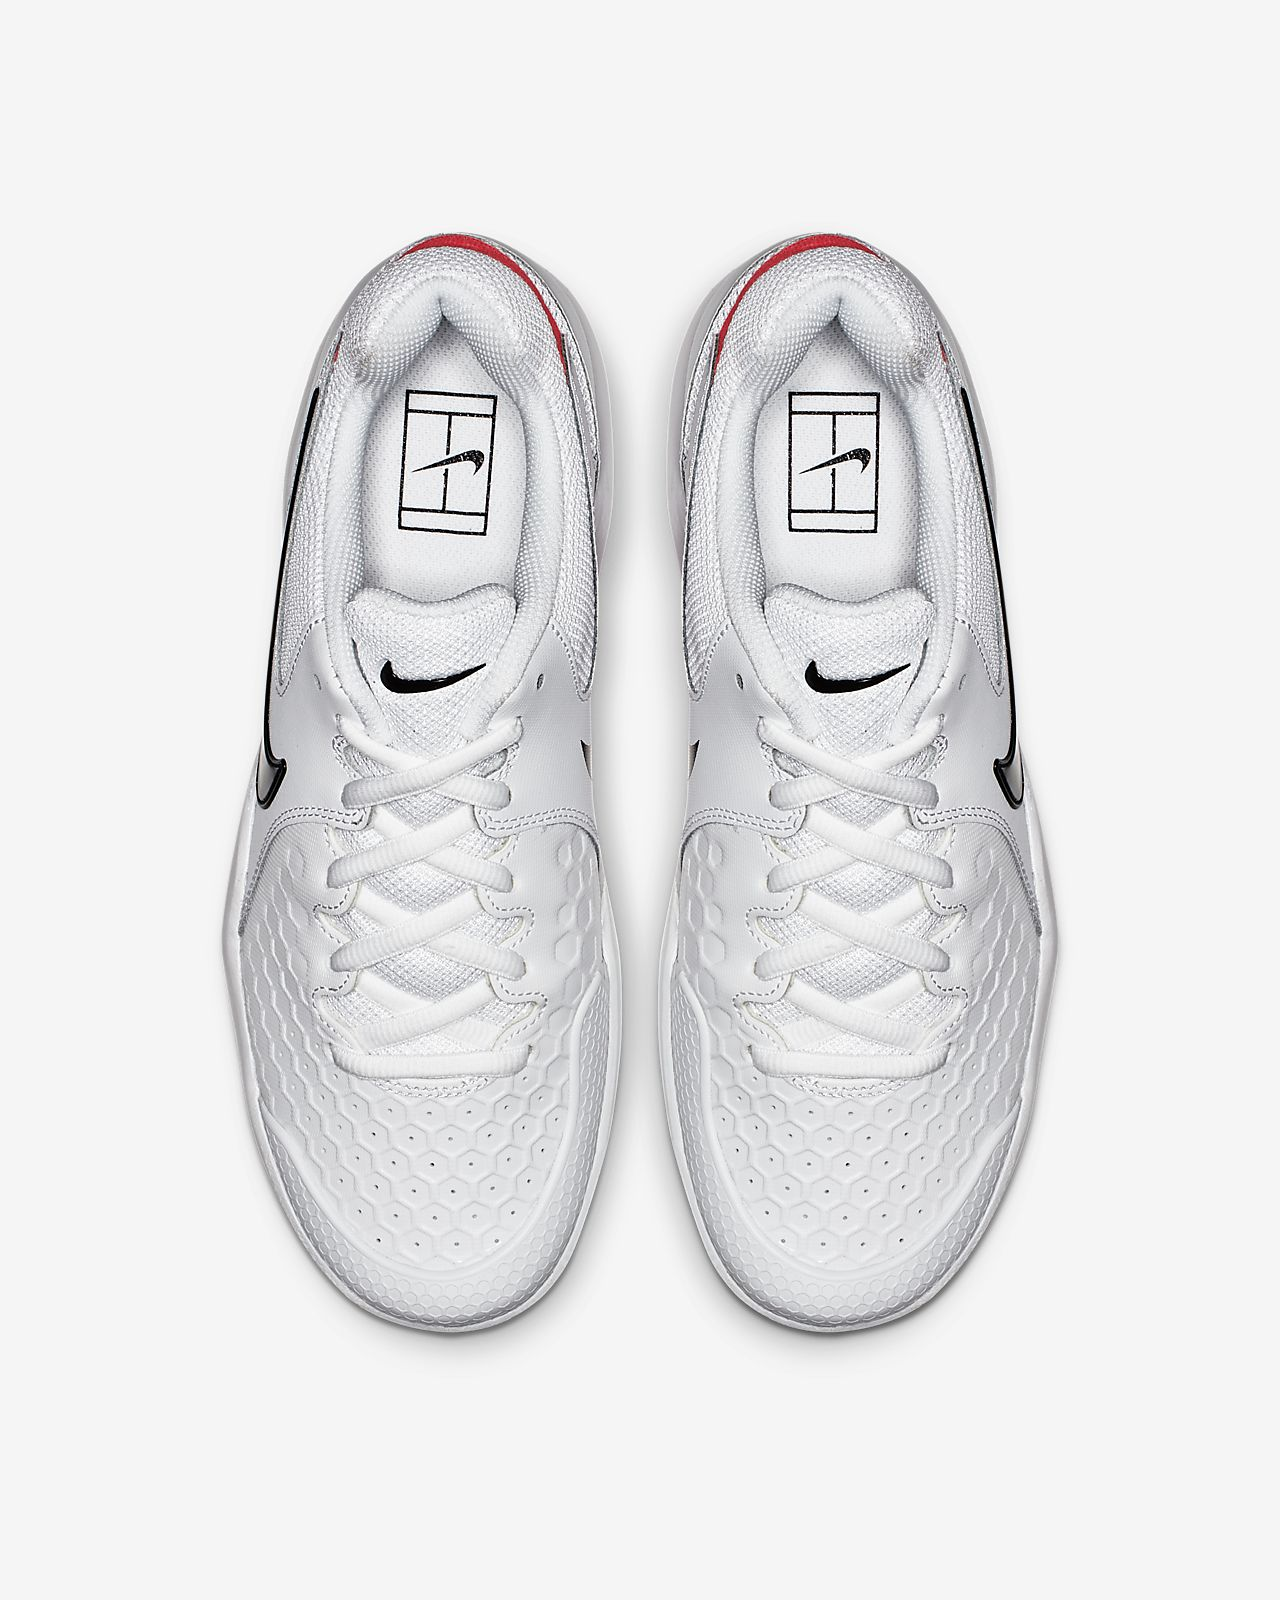 6e8c95fa21c6 NikeCourt Air Zoom Resistance Men s Hard Court Tennis Shoe. Nike.com